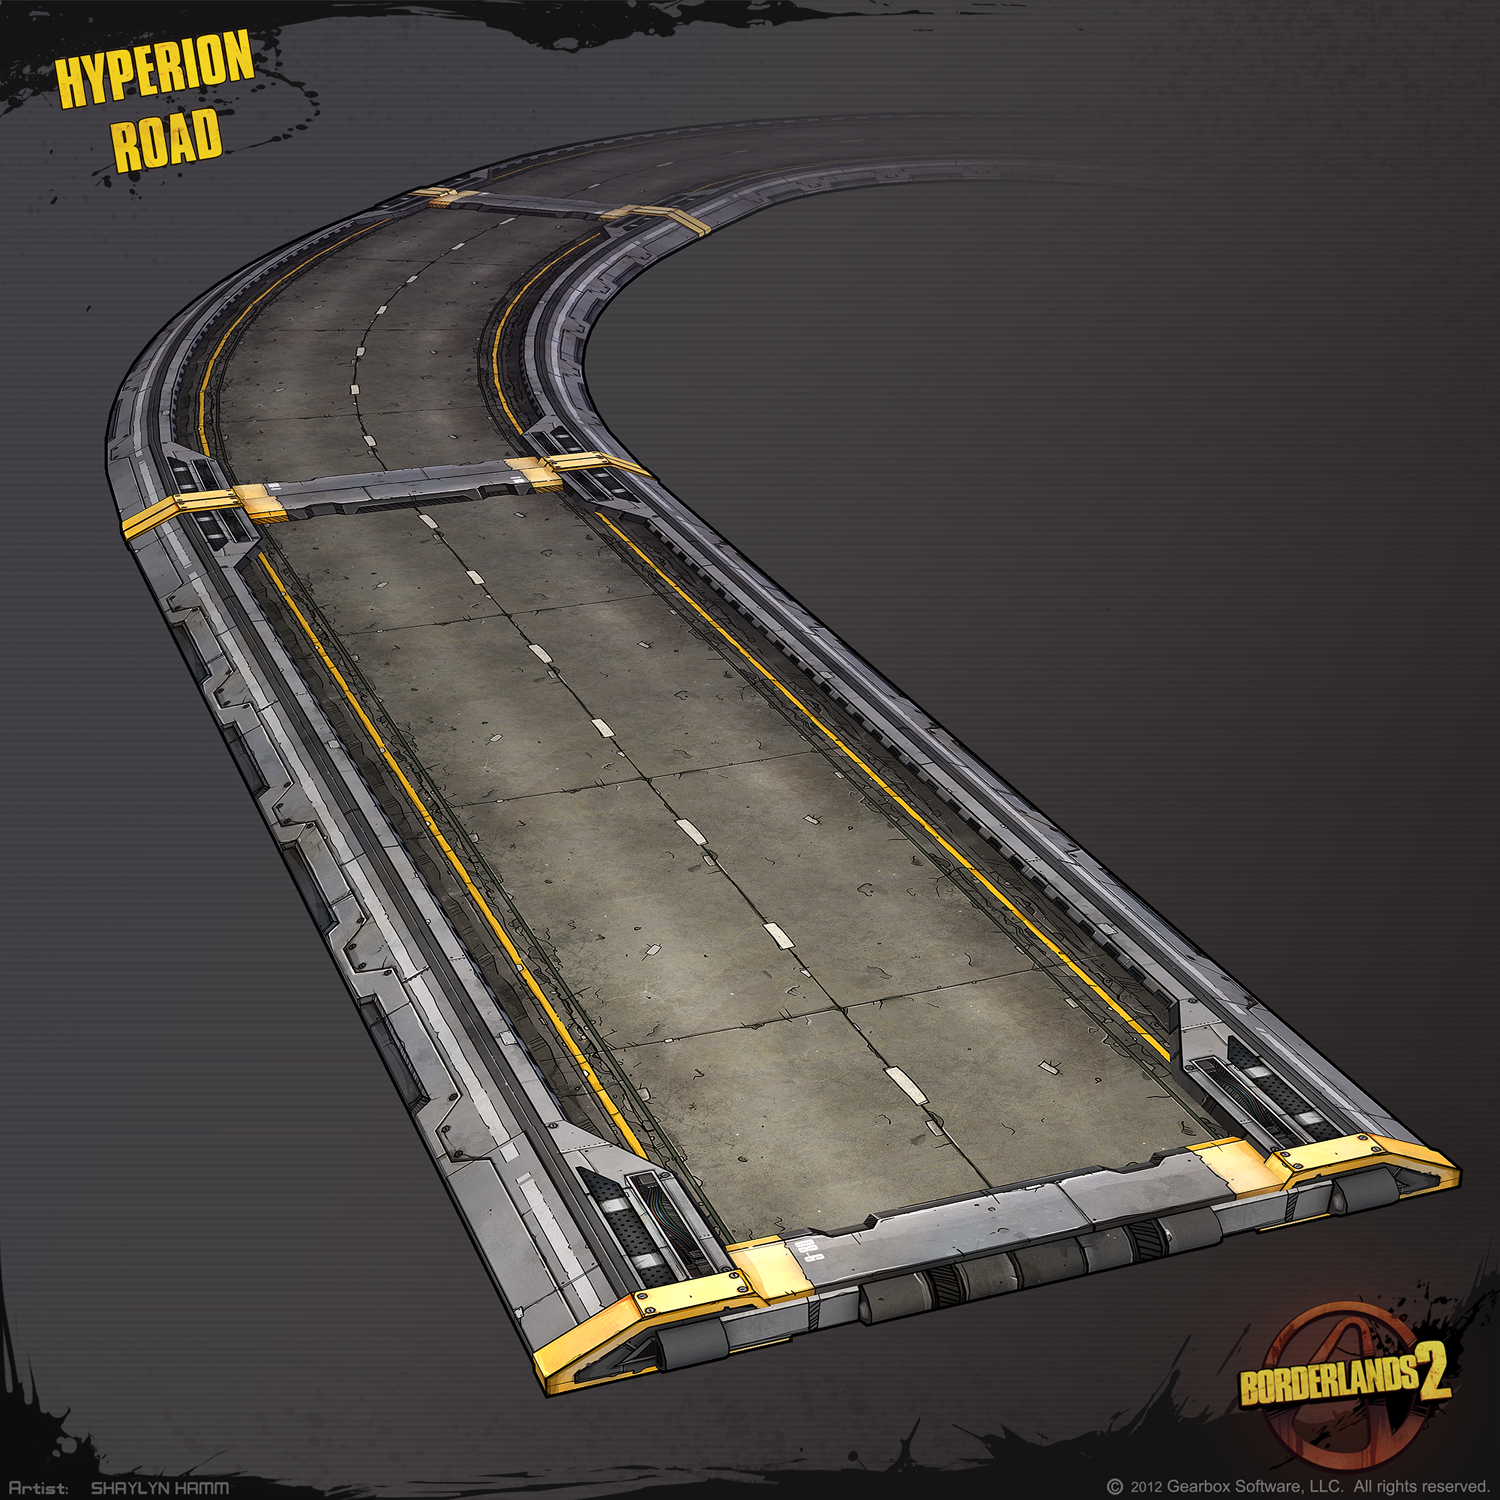 hyperion_road_small_by_chemicalalia-d5l6x0m.png